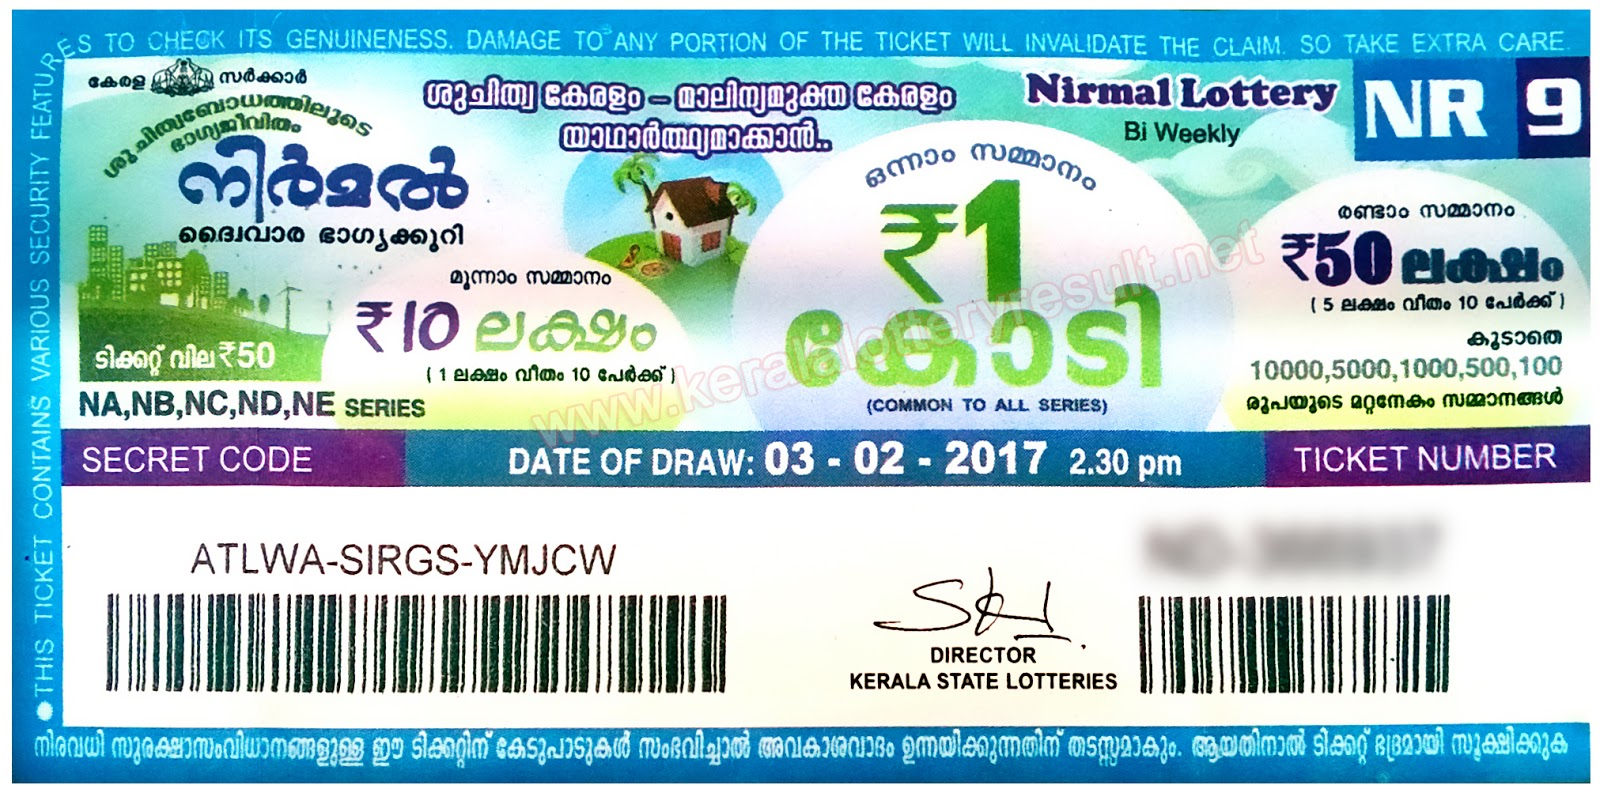 kerala state lotteries Kerala lottery is a big initiative launched by the government of kerala over 50 years ago the idea is initially brought forward by the finance minister of kerala state government pk kunju sahib since 1967.